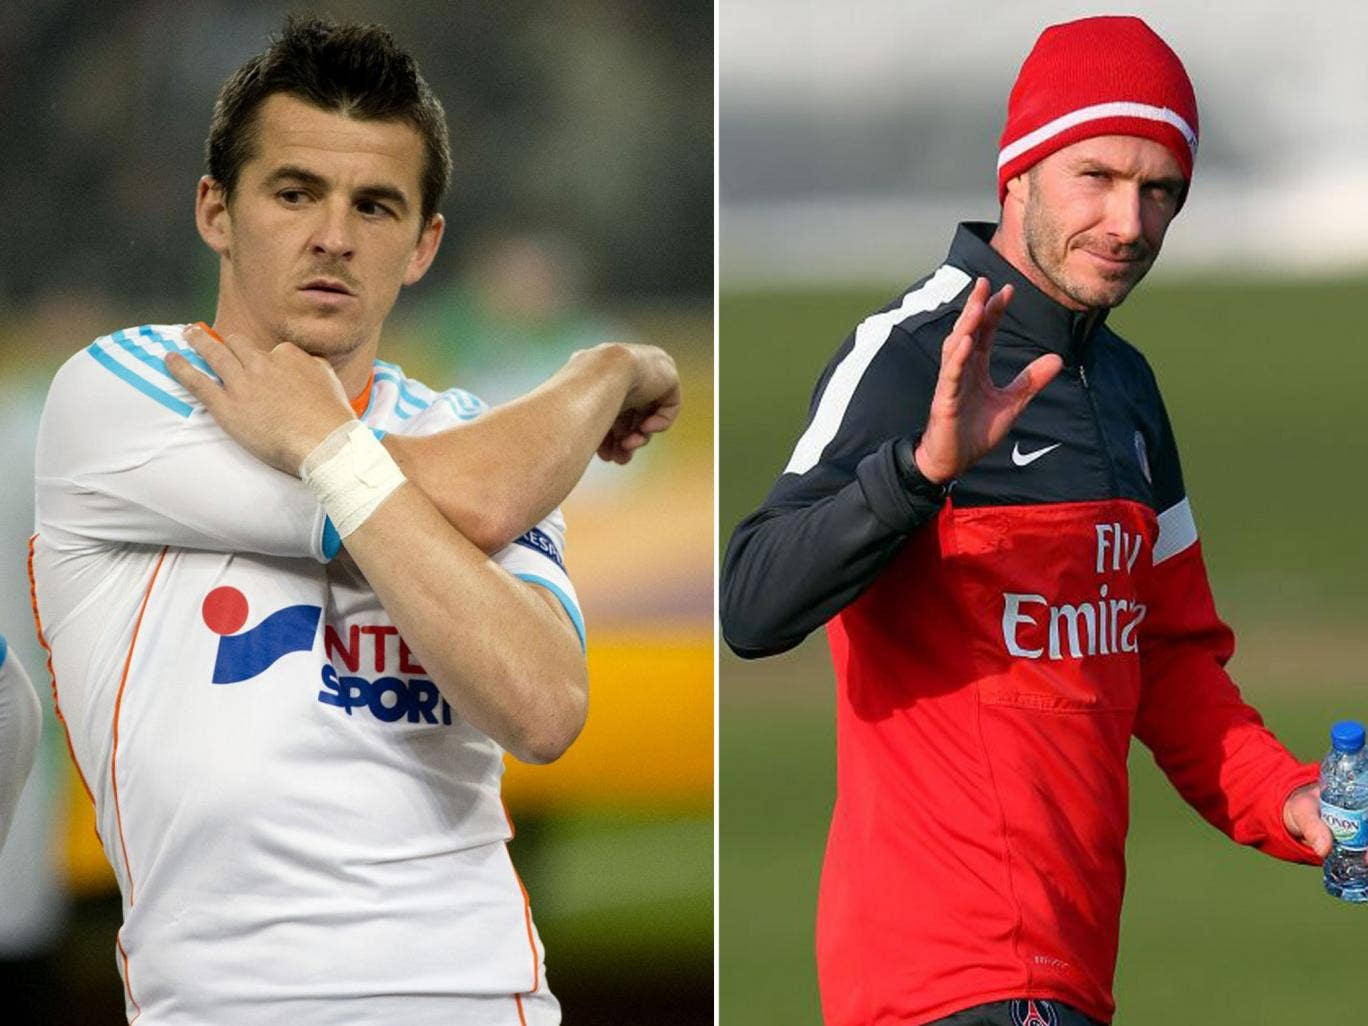 David Beckham and Joey Barton, hero and villain, may not be so different – at least they have ventured afield